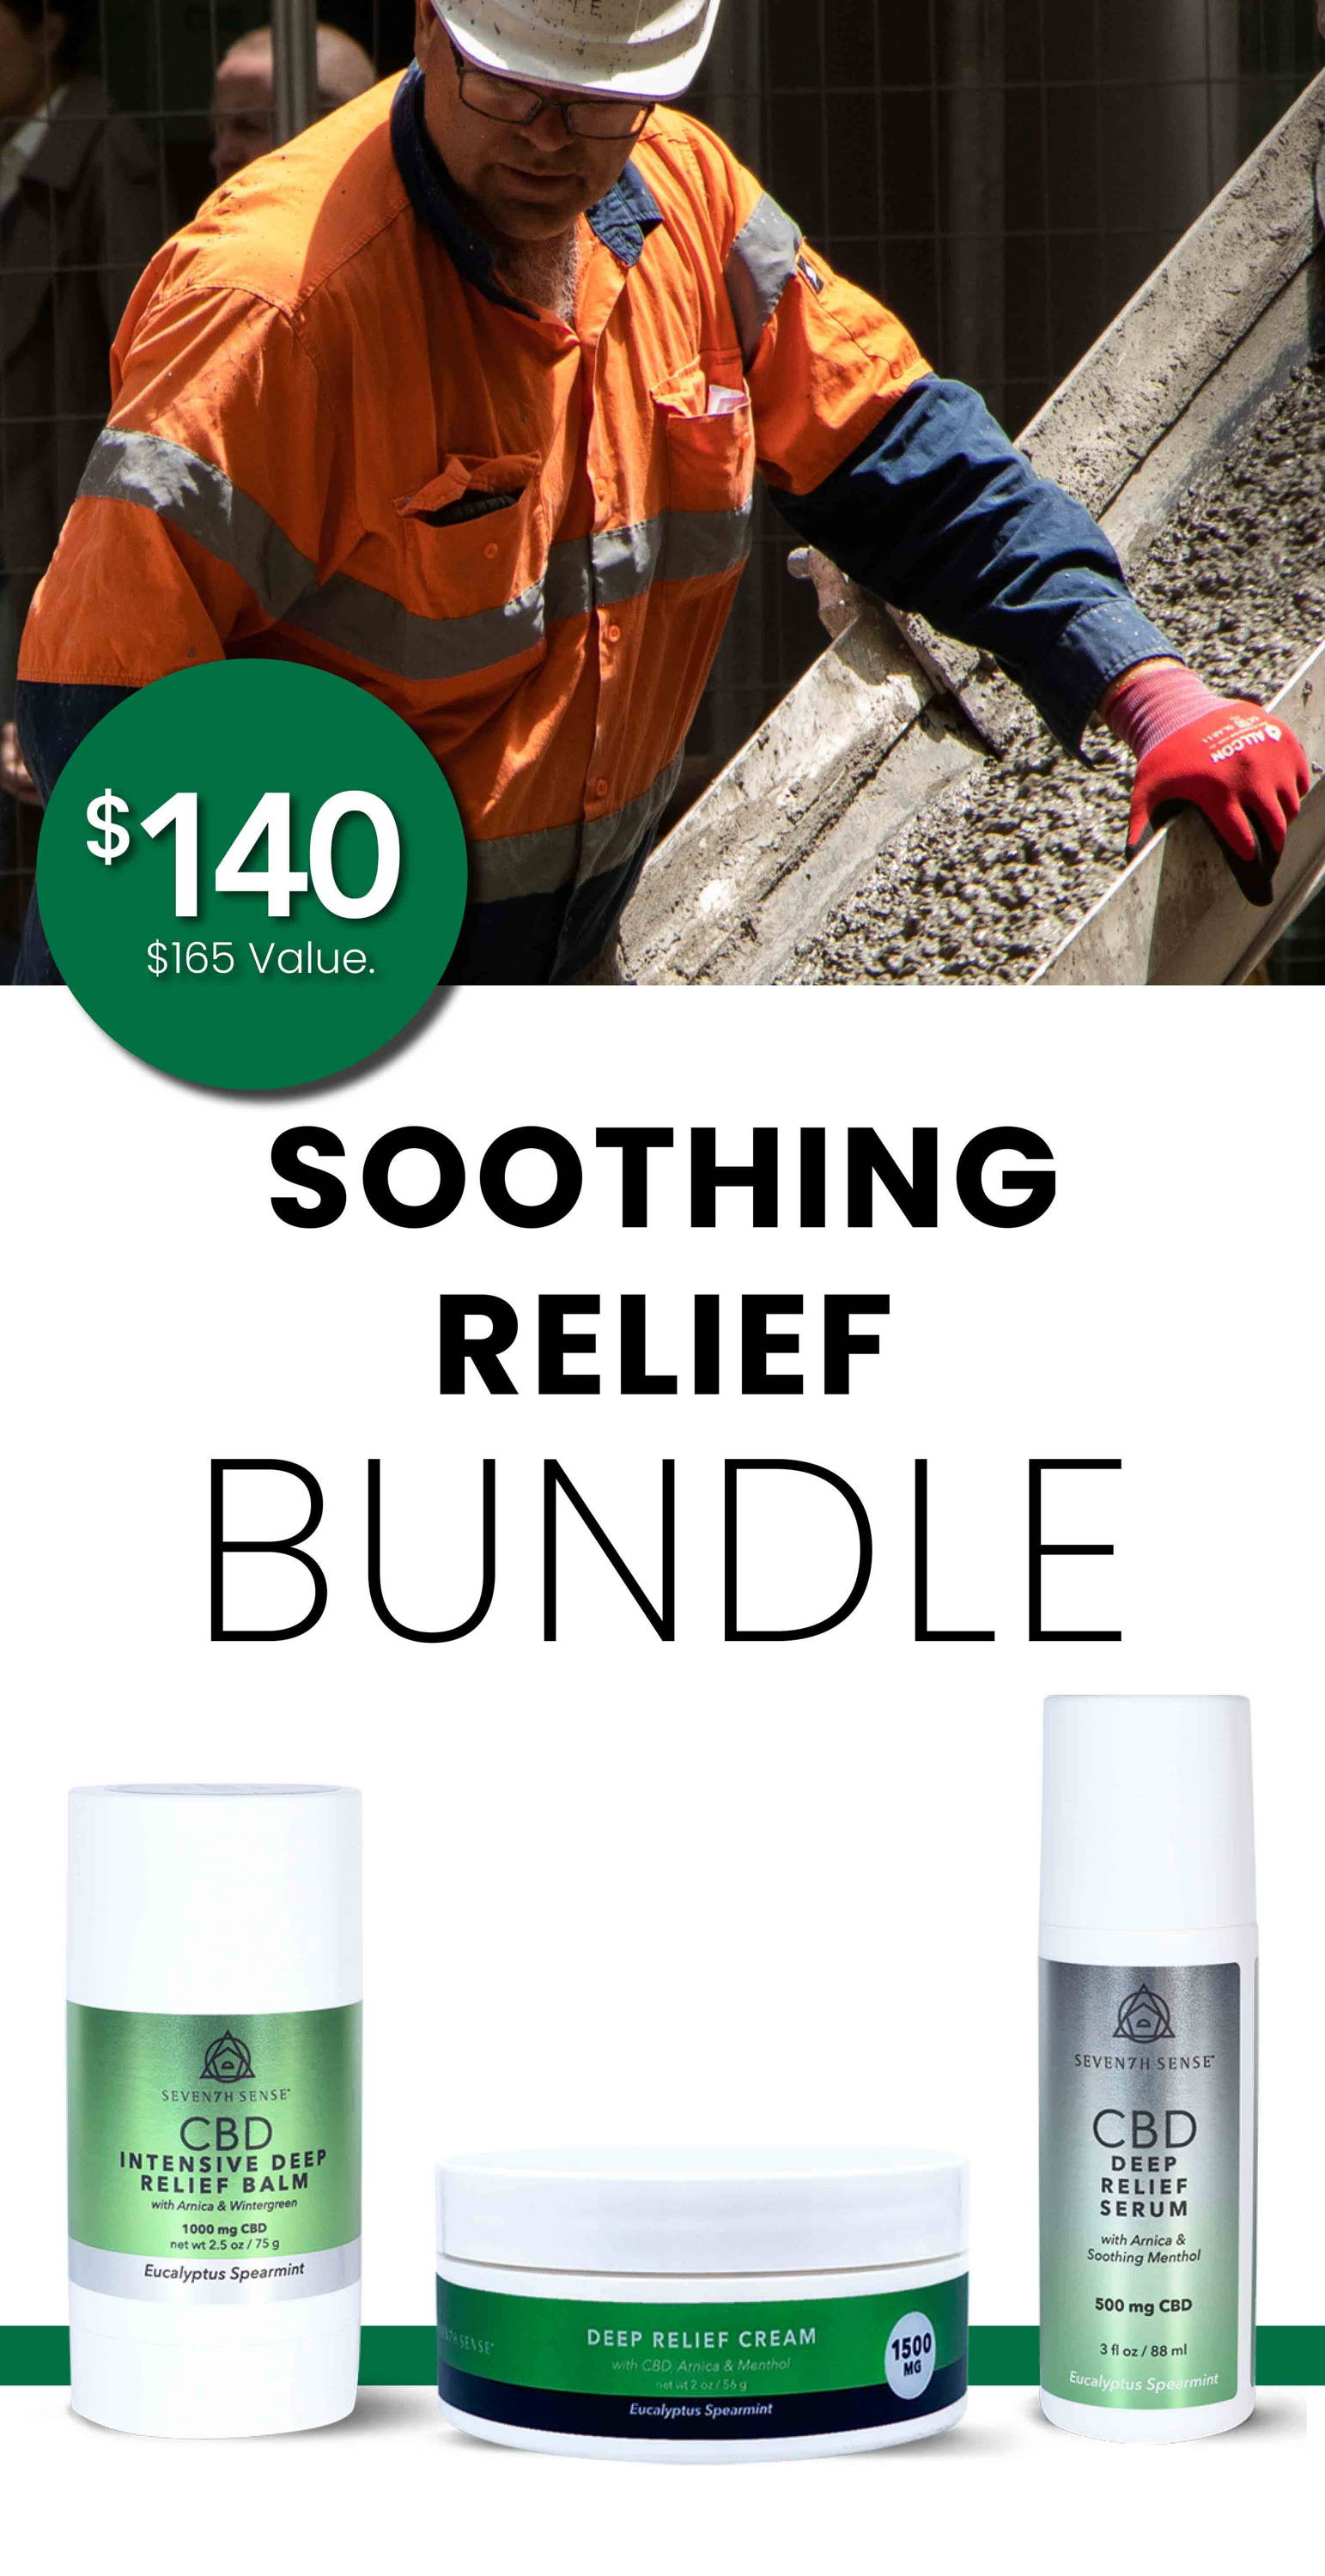 Soothing Relief Bundle $140. $165 Value.